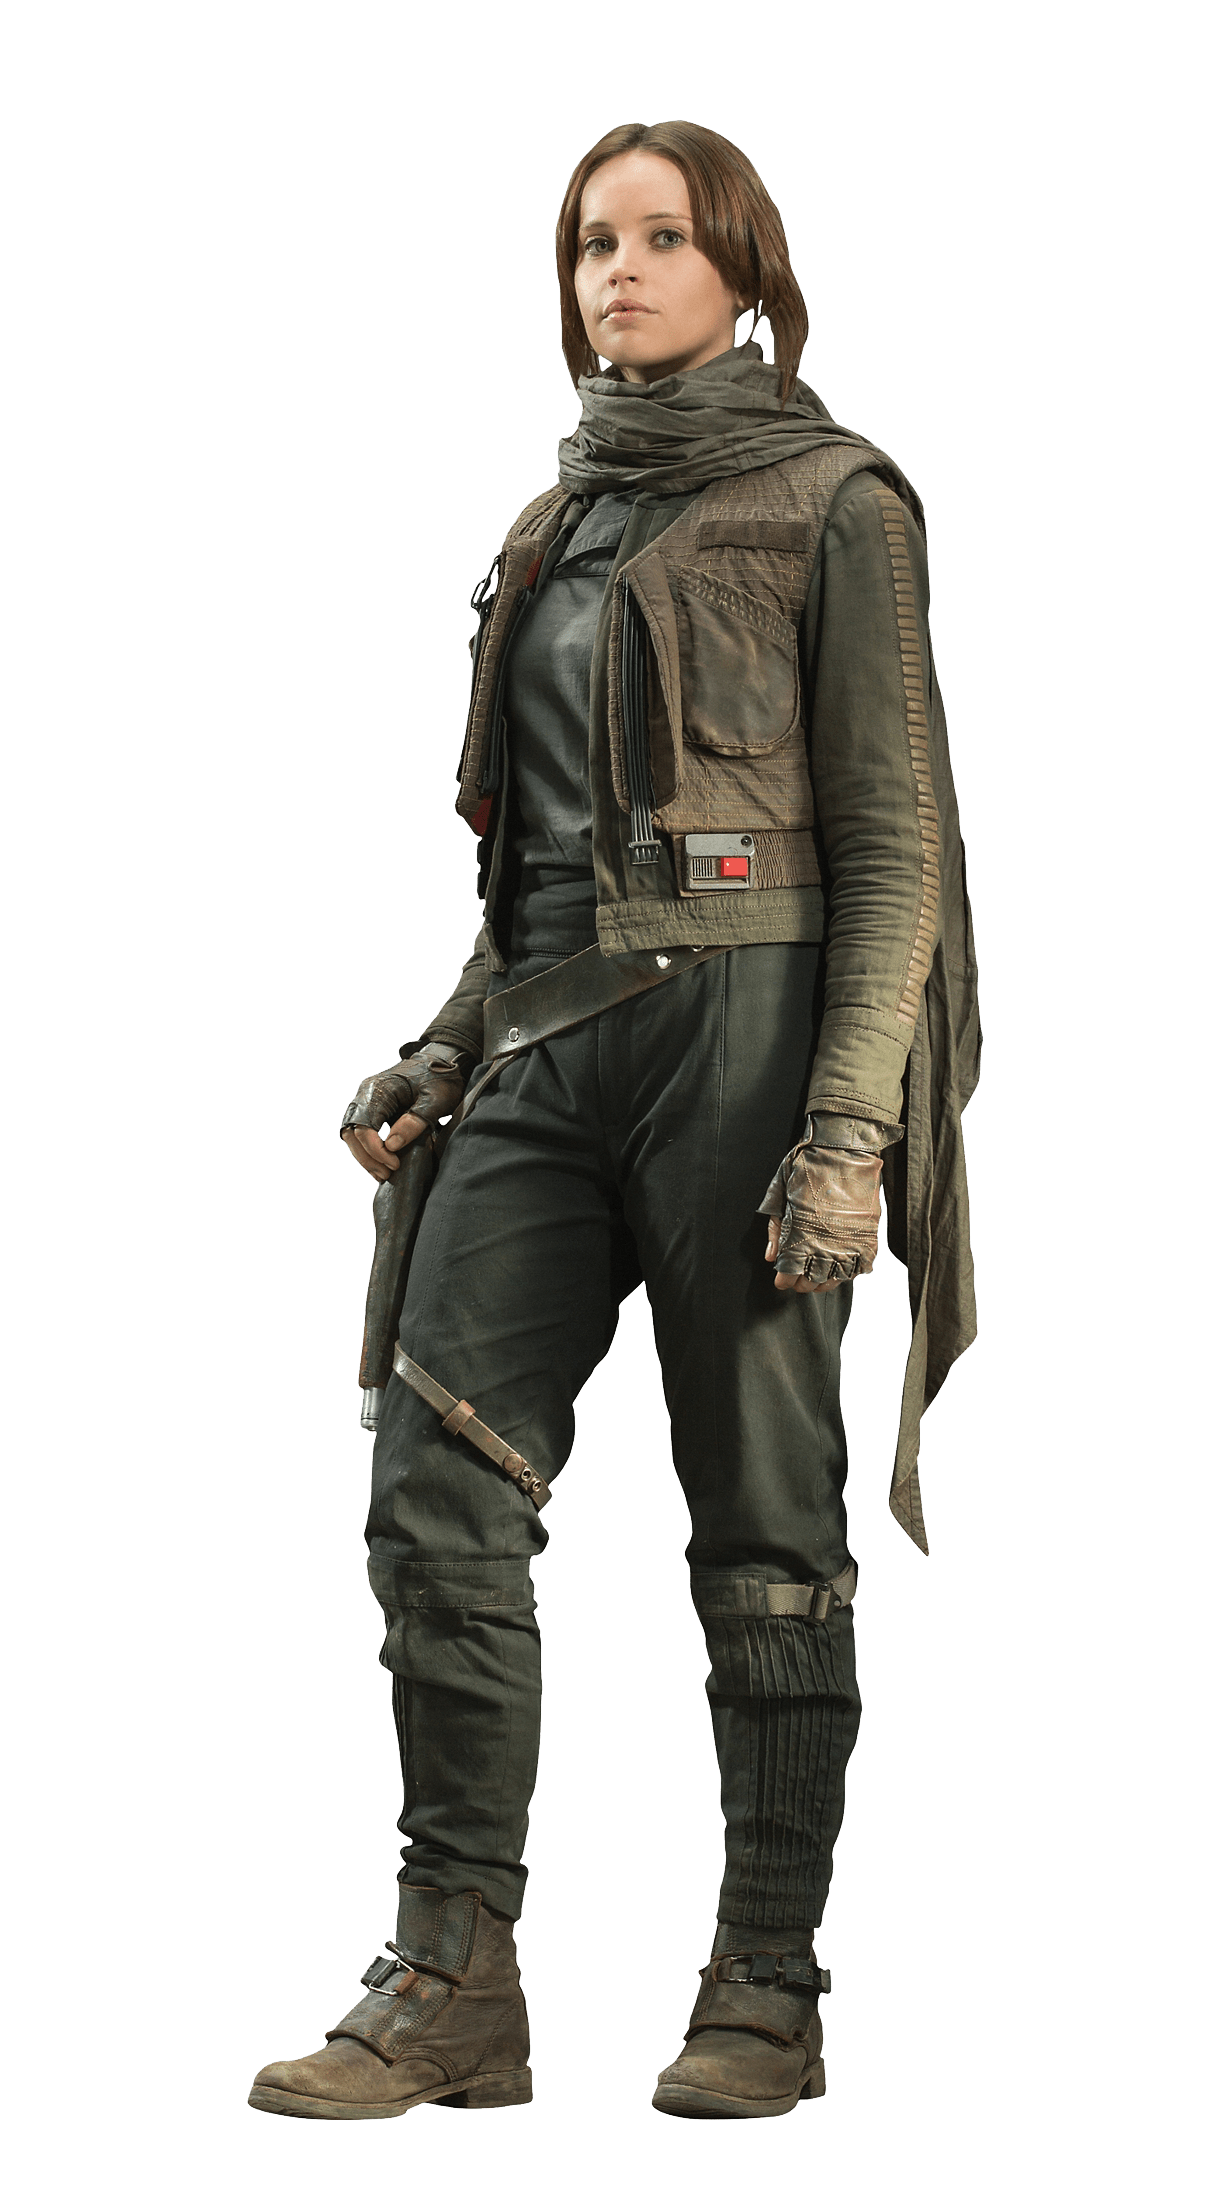 Star wars rogue one clipart image royalty free download Rogue One Felicity Jones Jyn Erso transparent PNG - StickPNG image royalty free download